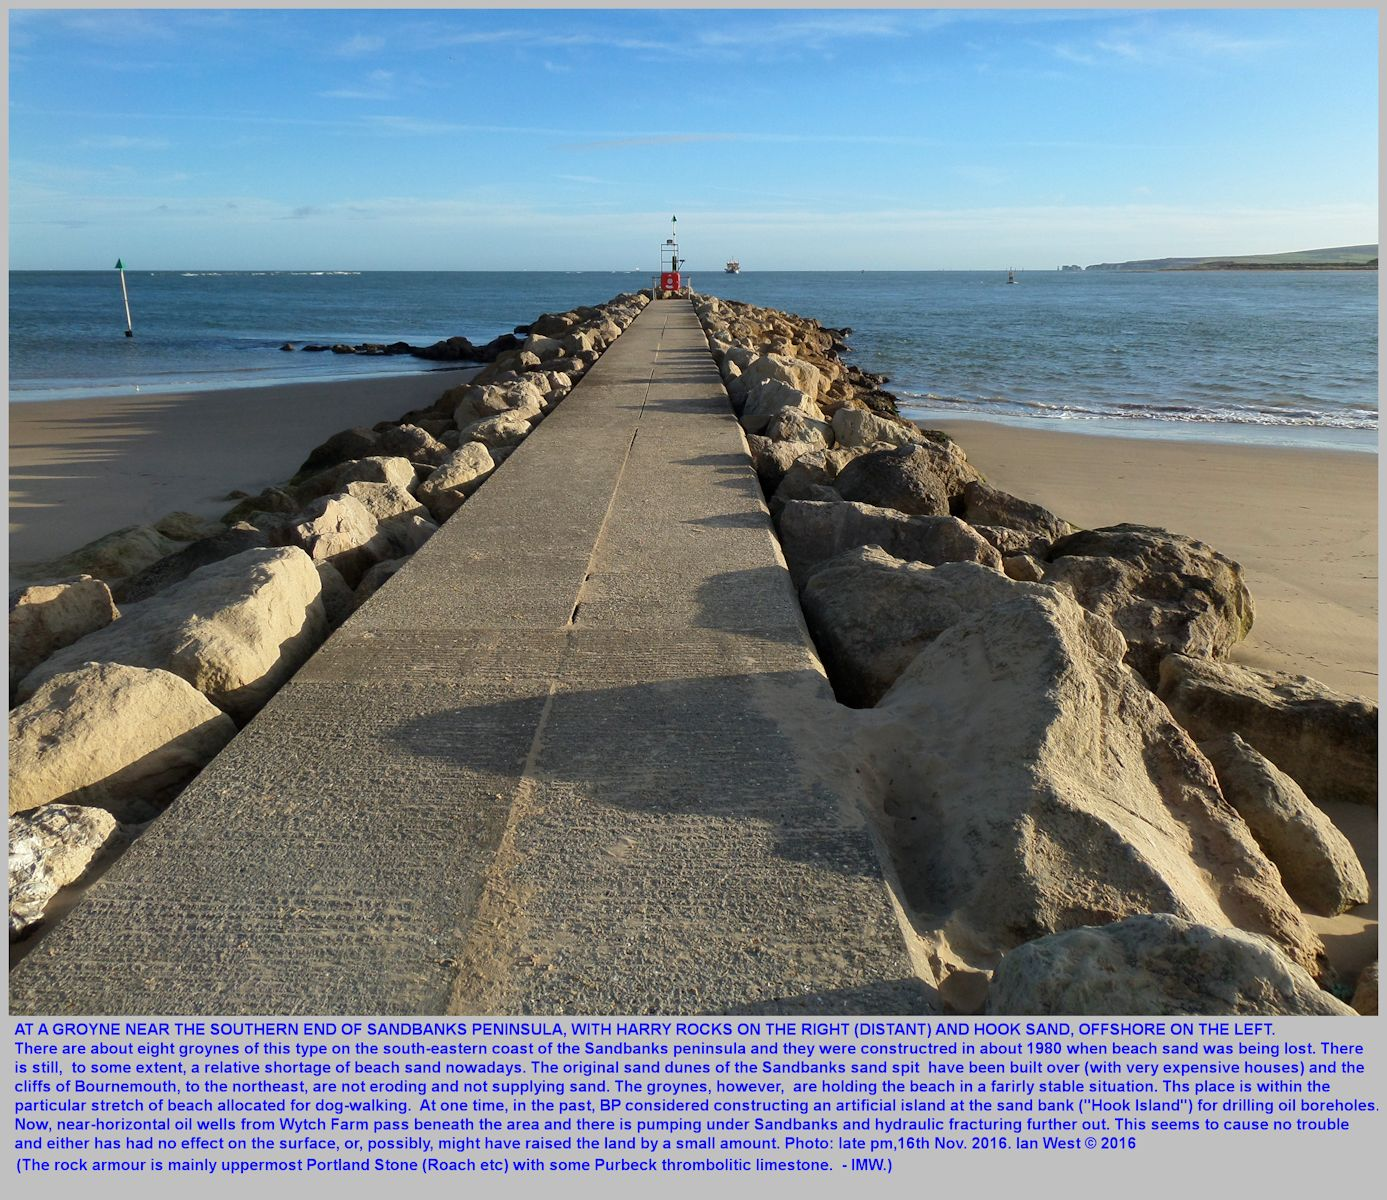 A groyne of concrete with rock armour at the southeastern part of the Sandbanks Peninsula, Dorset, within the dog-walking beach area